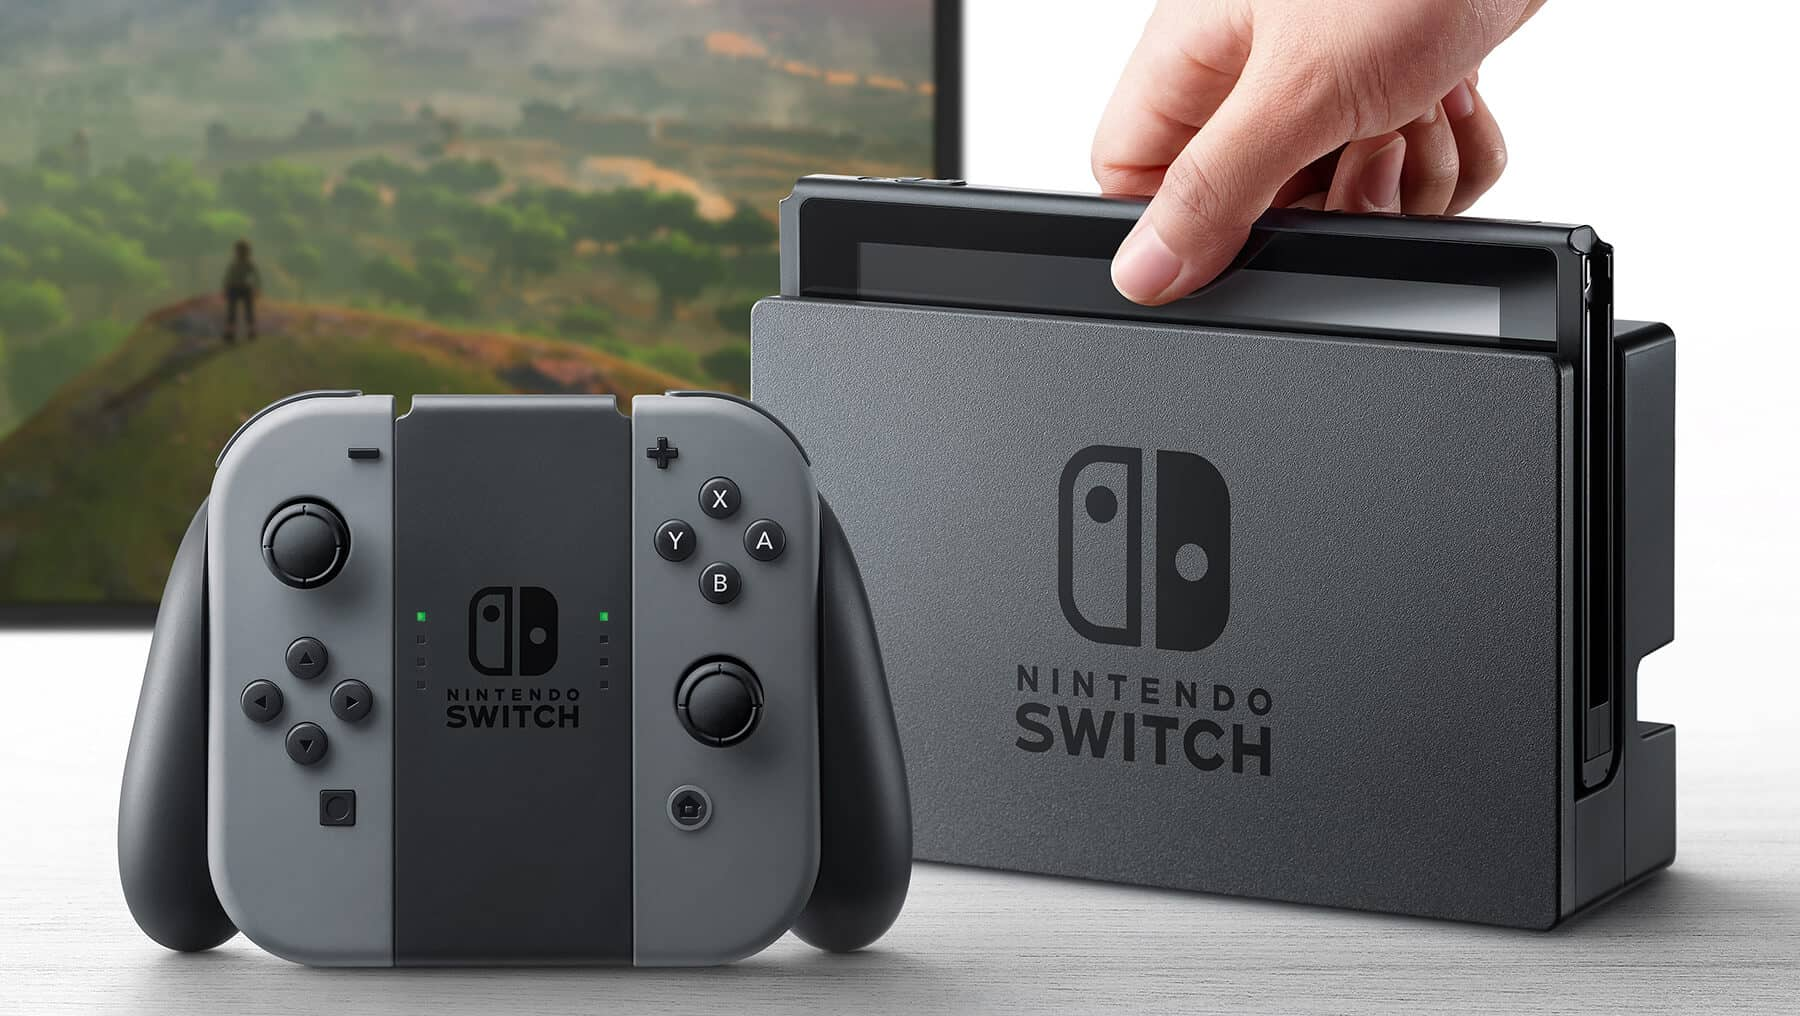 Nintendo Switch Console will release sometime in 2017